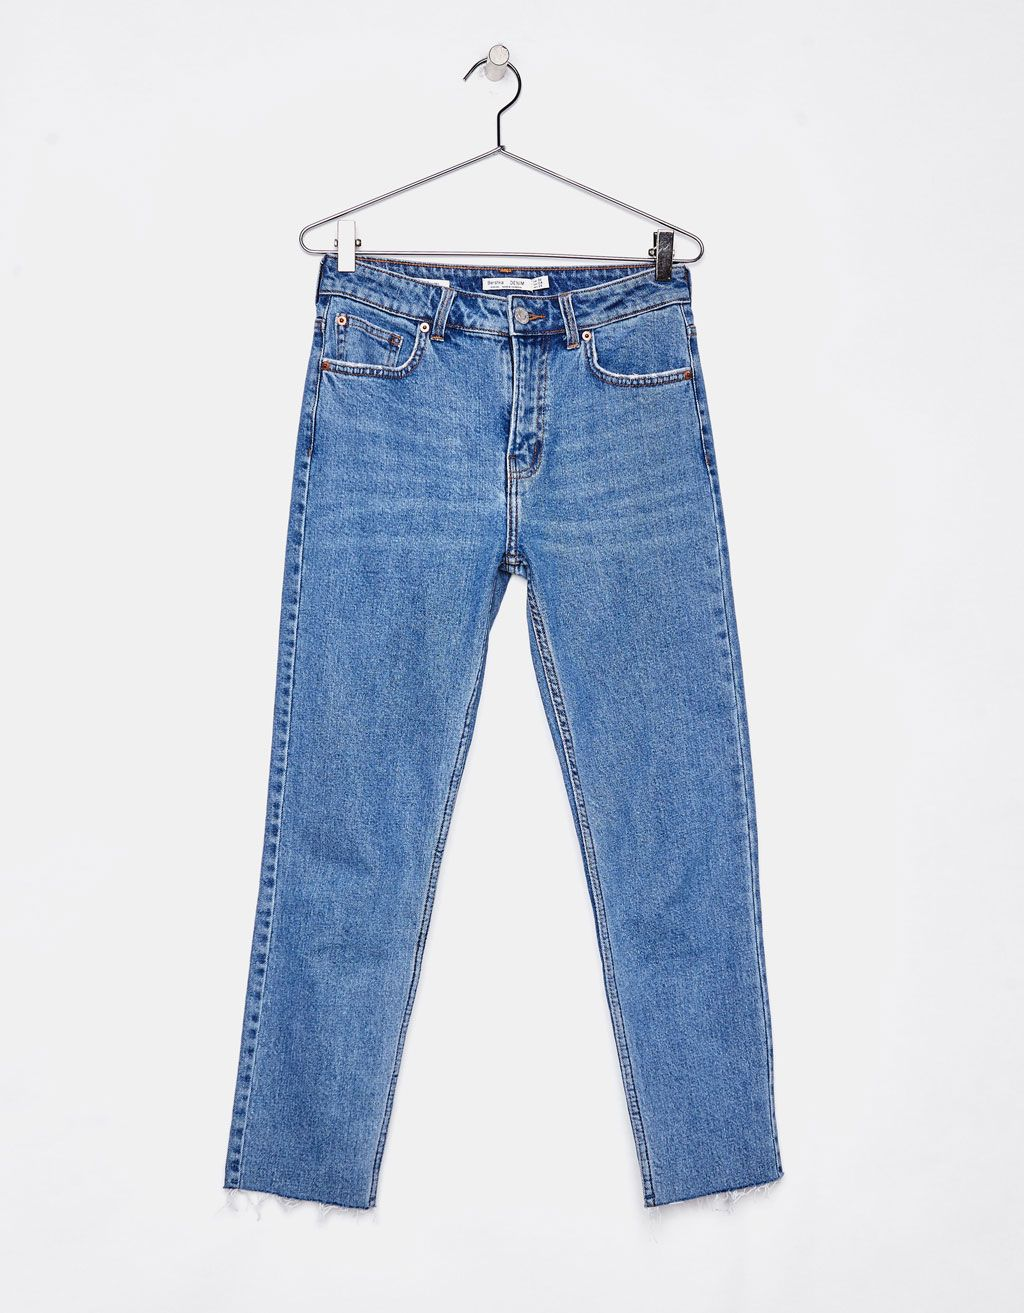 f05117afd9 Straight fit cropped jeans - Bershka  denim  straight  straightfit  jeans   blue  trendy  trend  fashion  product  girl